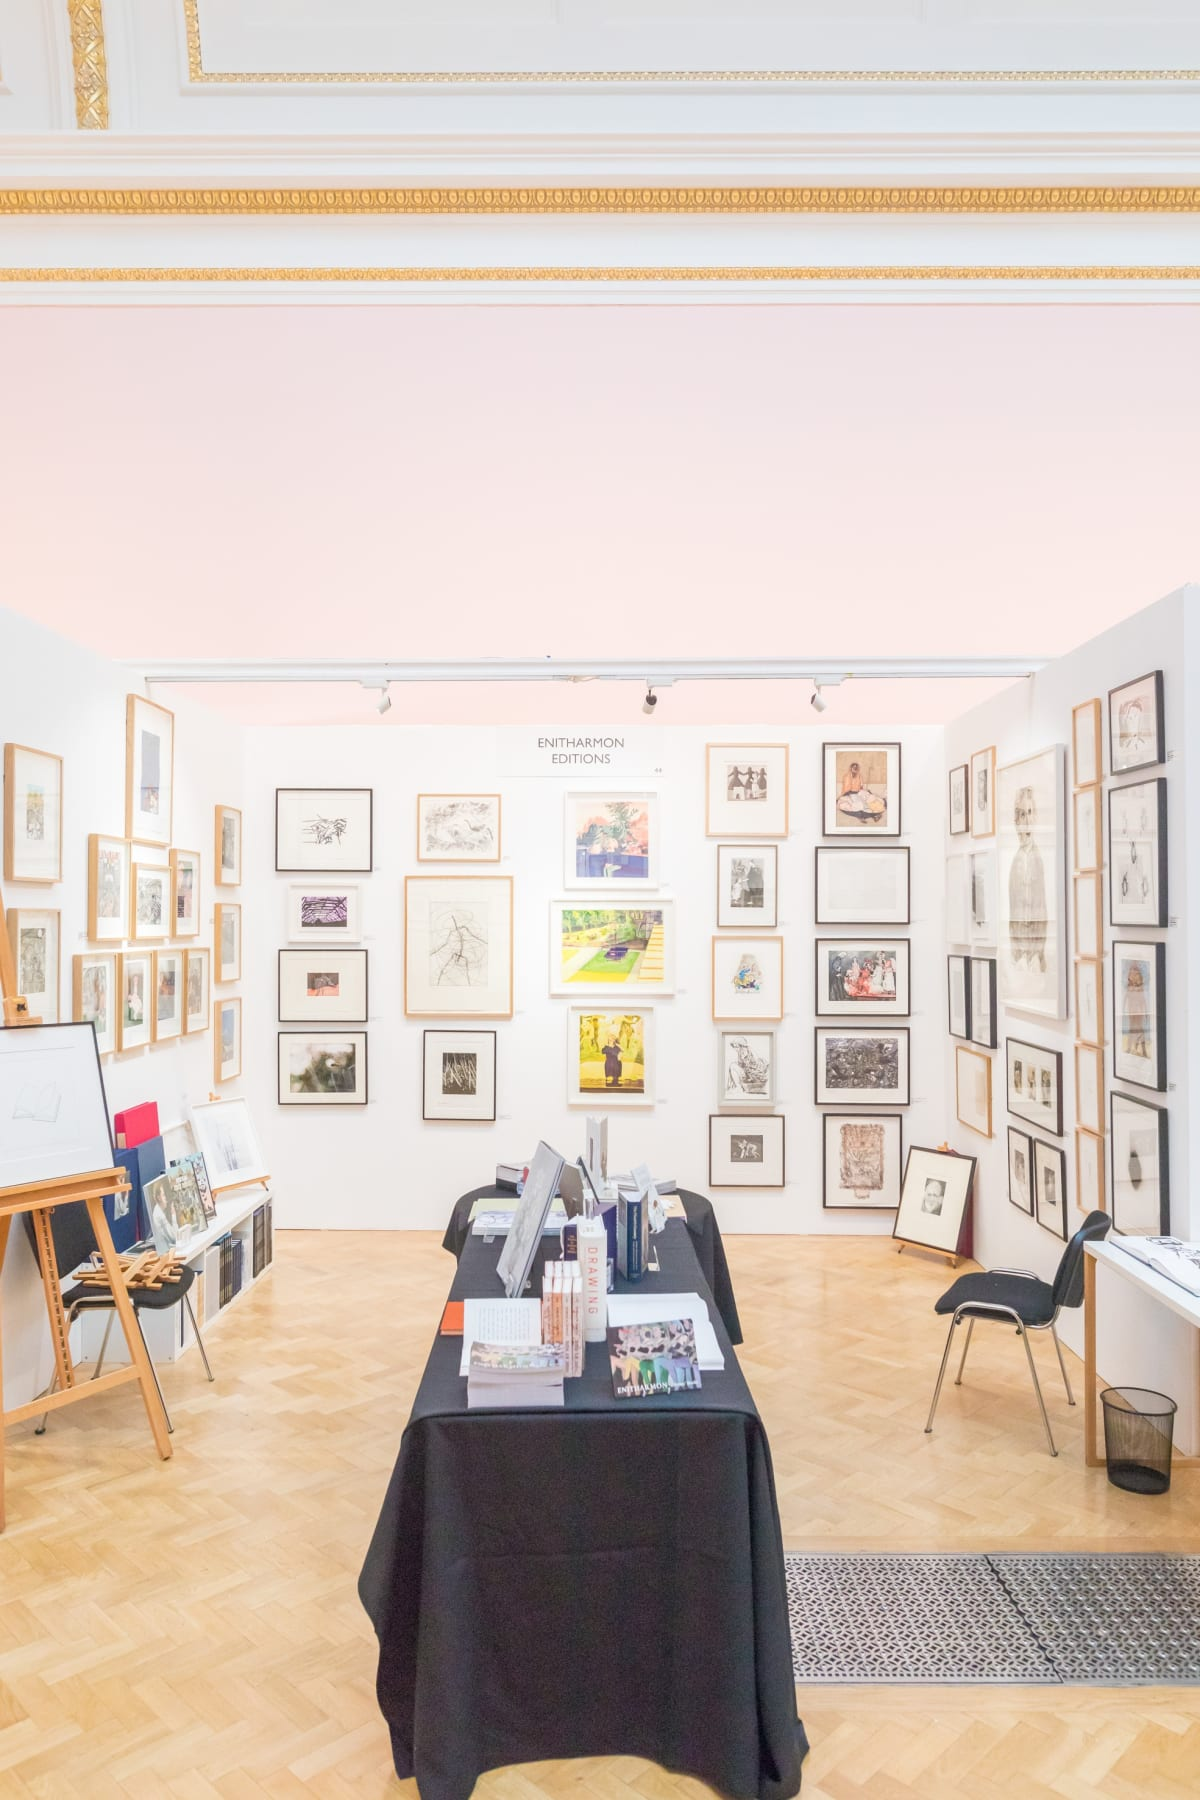 Enitharmon Editions, Stand 46